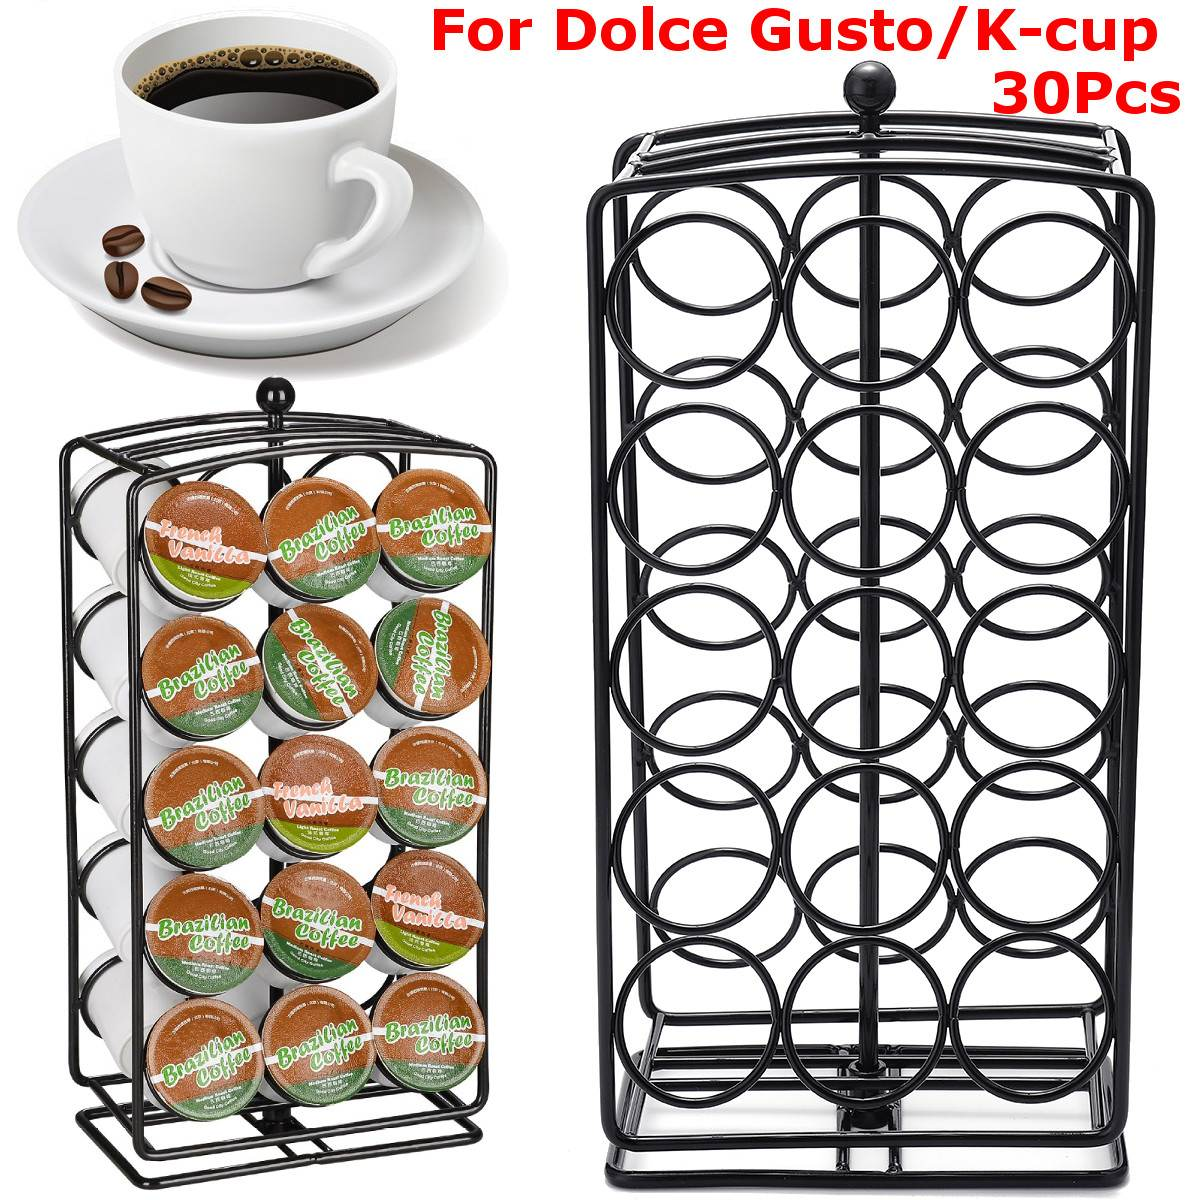 30Pcs Coffee Capsules Pod Holder Stand Dispenser Rotating Rack Capsule Cup For Dolce Gusto Home Kitchen Coffee Maker Appliance